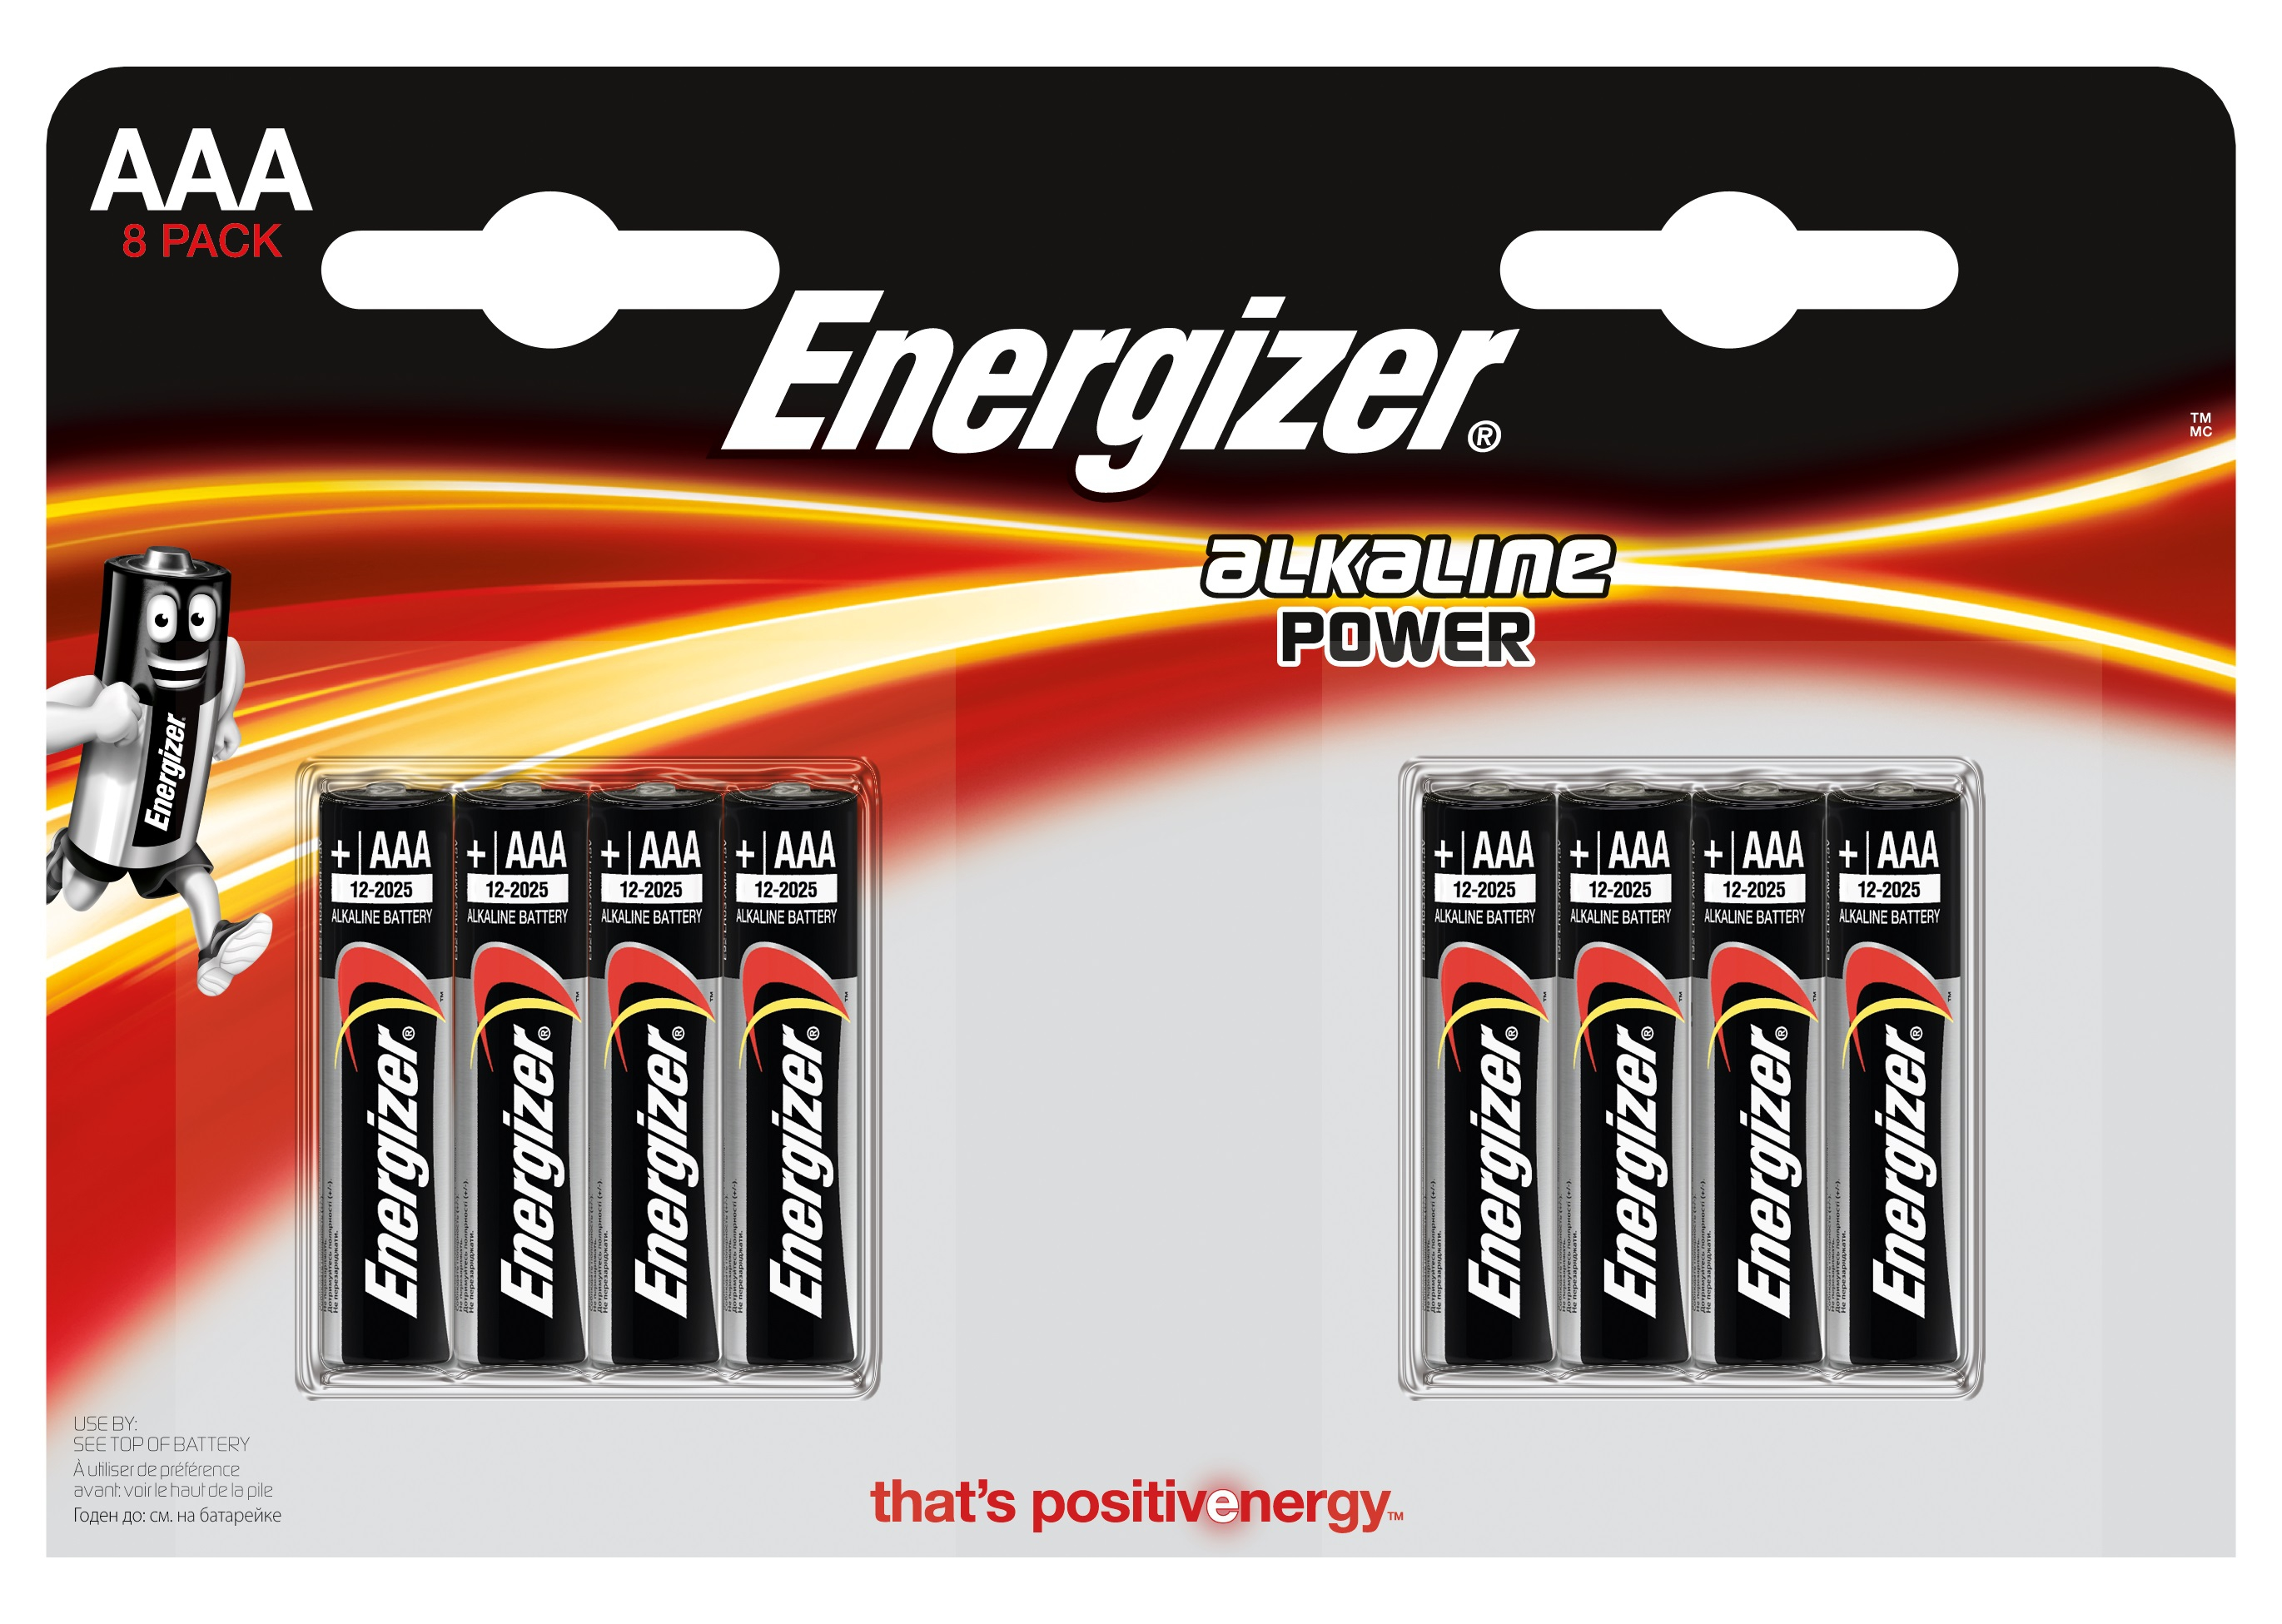 Элементы питания Energizer Alkaline Power AAA 8 шт E300127803 батарейки energizer alkaline power ааа 8 шт